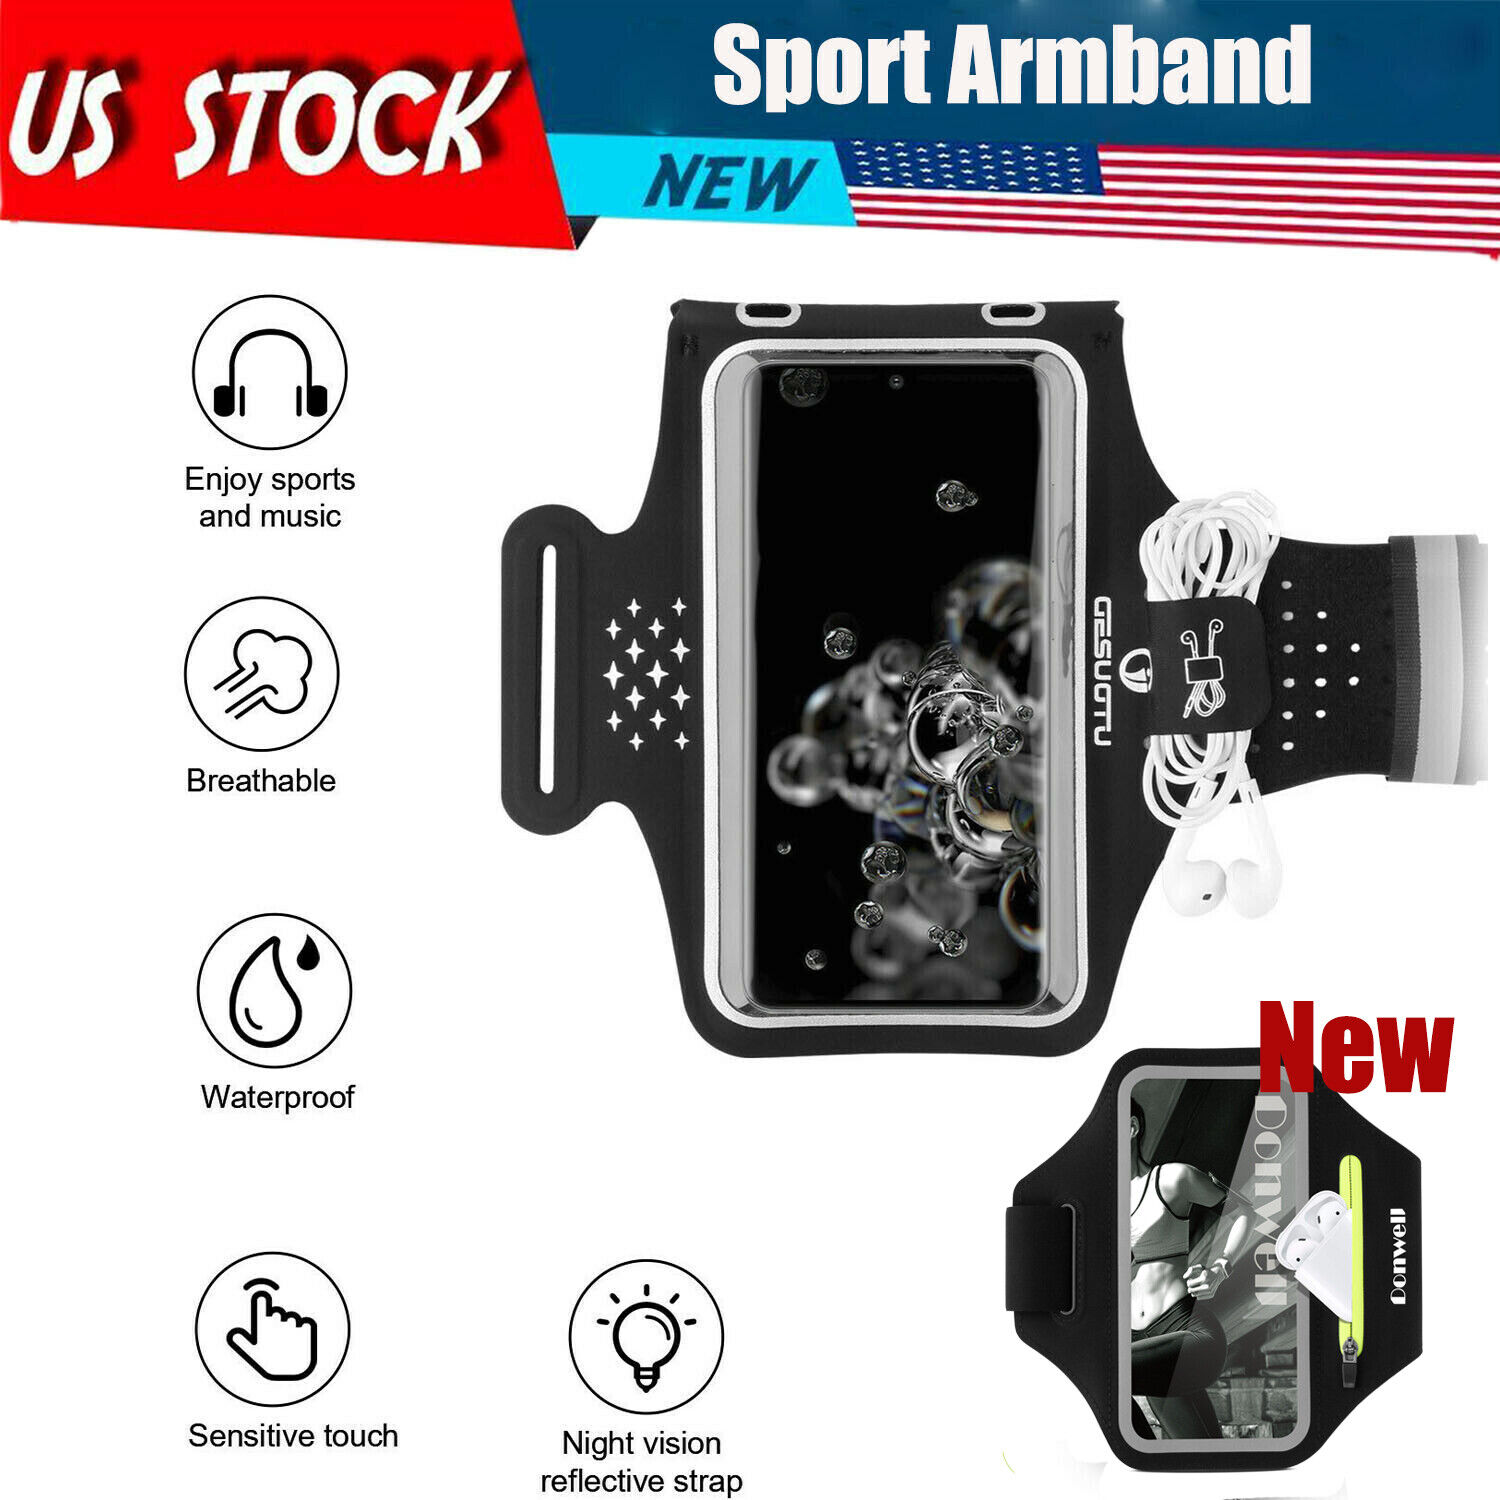 Sport Armband Running Jogging Gym Holder Arm Band Bag Case For Samsung Phone Armbands